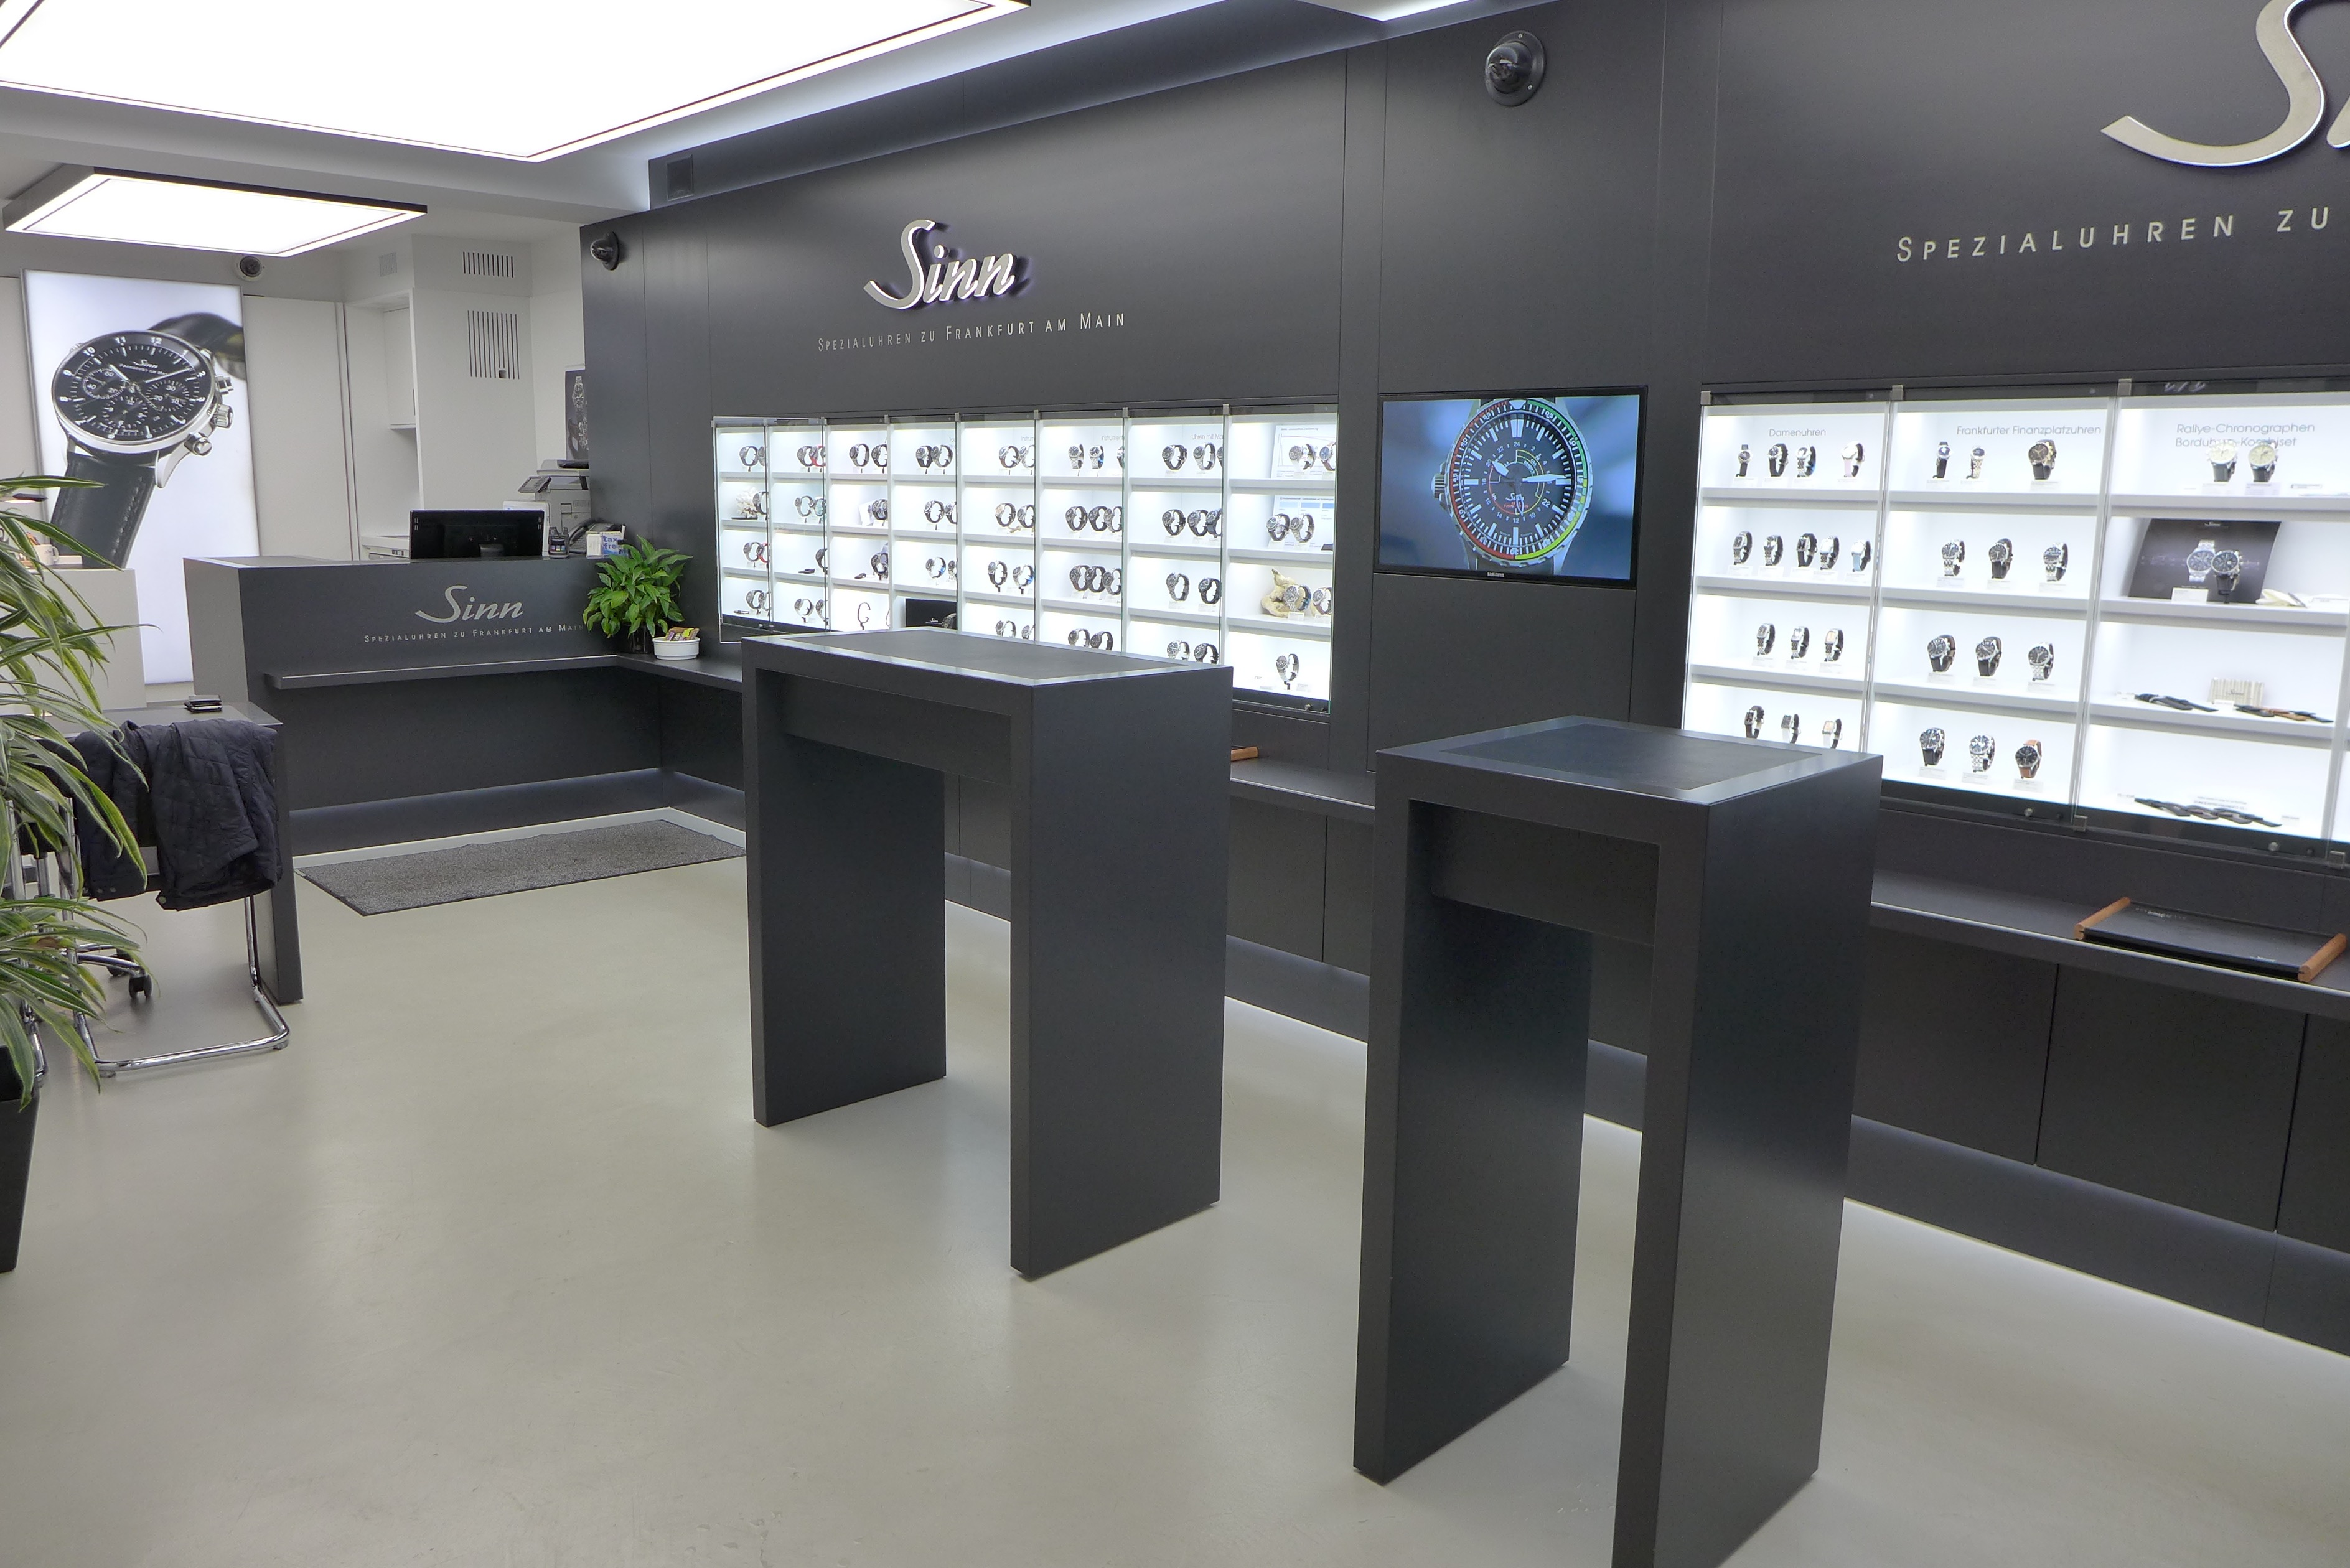 On The Road Again: Visit to Sinn Boutique and Preview of the New Factory